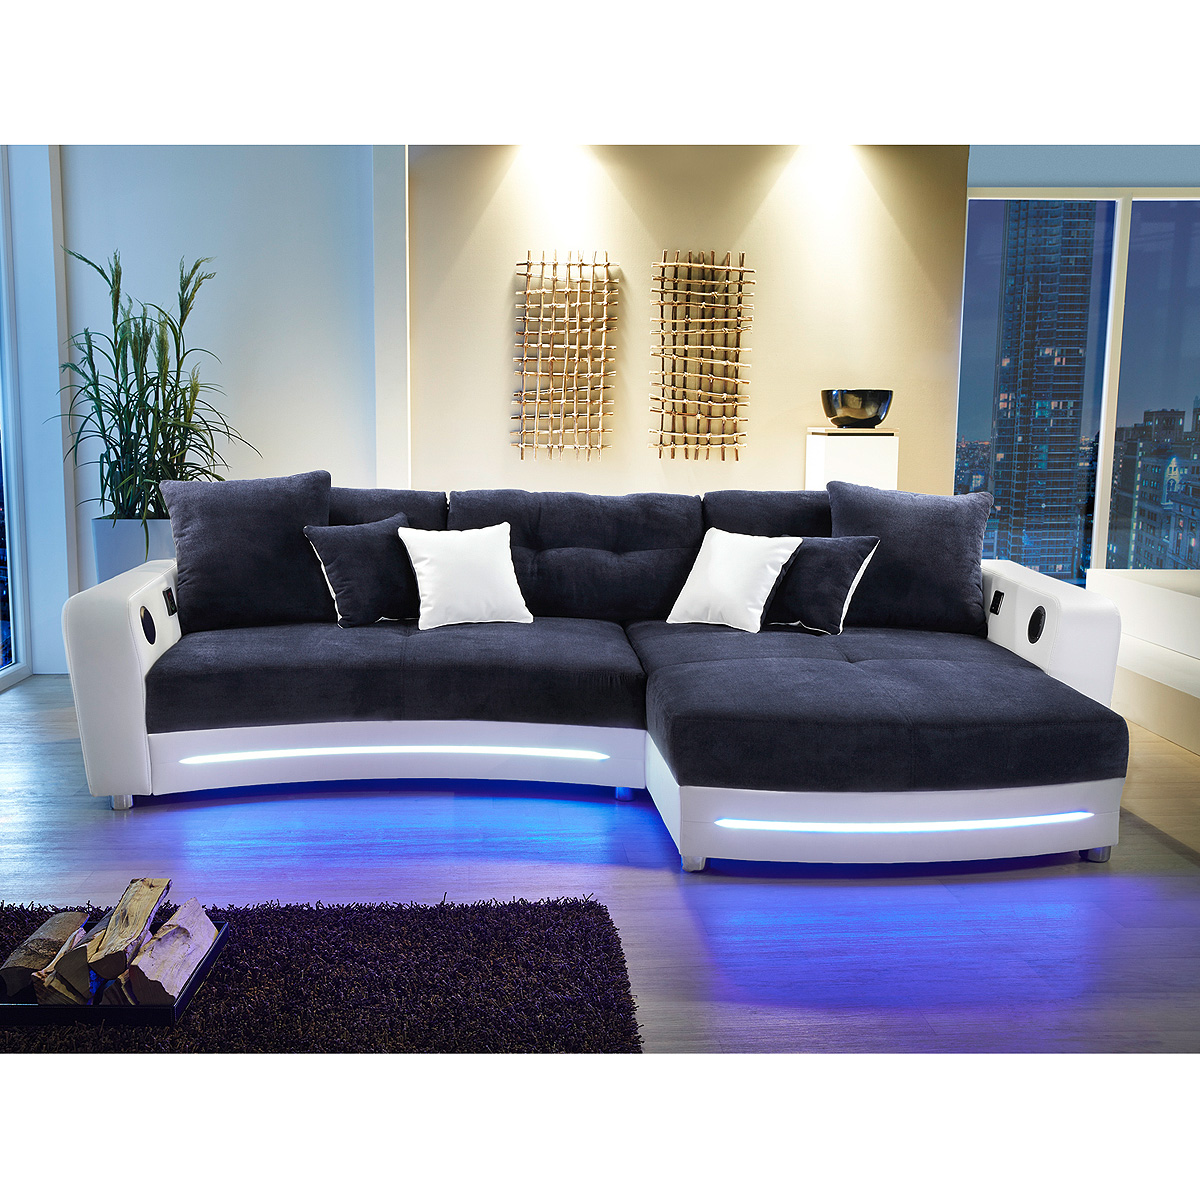 wohnlandschaft laredo sofa ecksofa in schwarz grau greige led soundsystem ebay. Black Bedroom Furniture Sets. Home Design Ideas